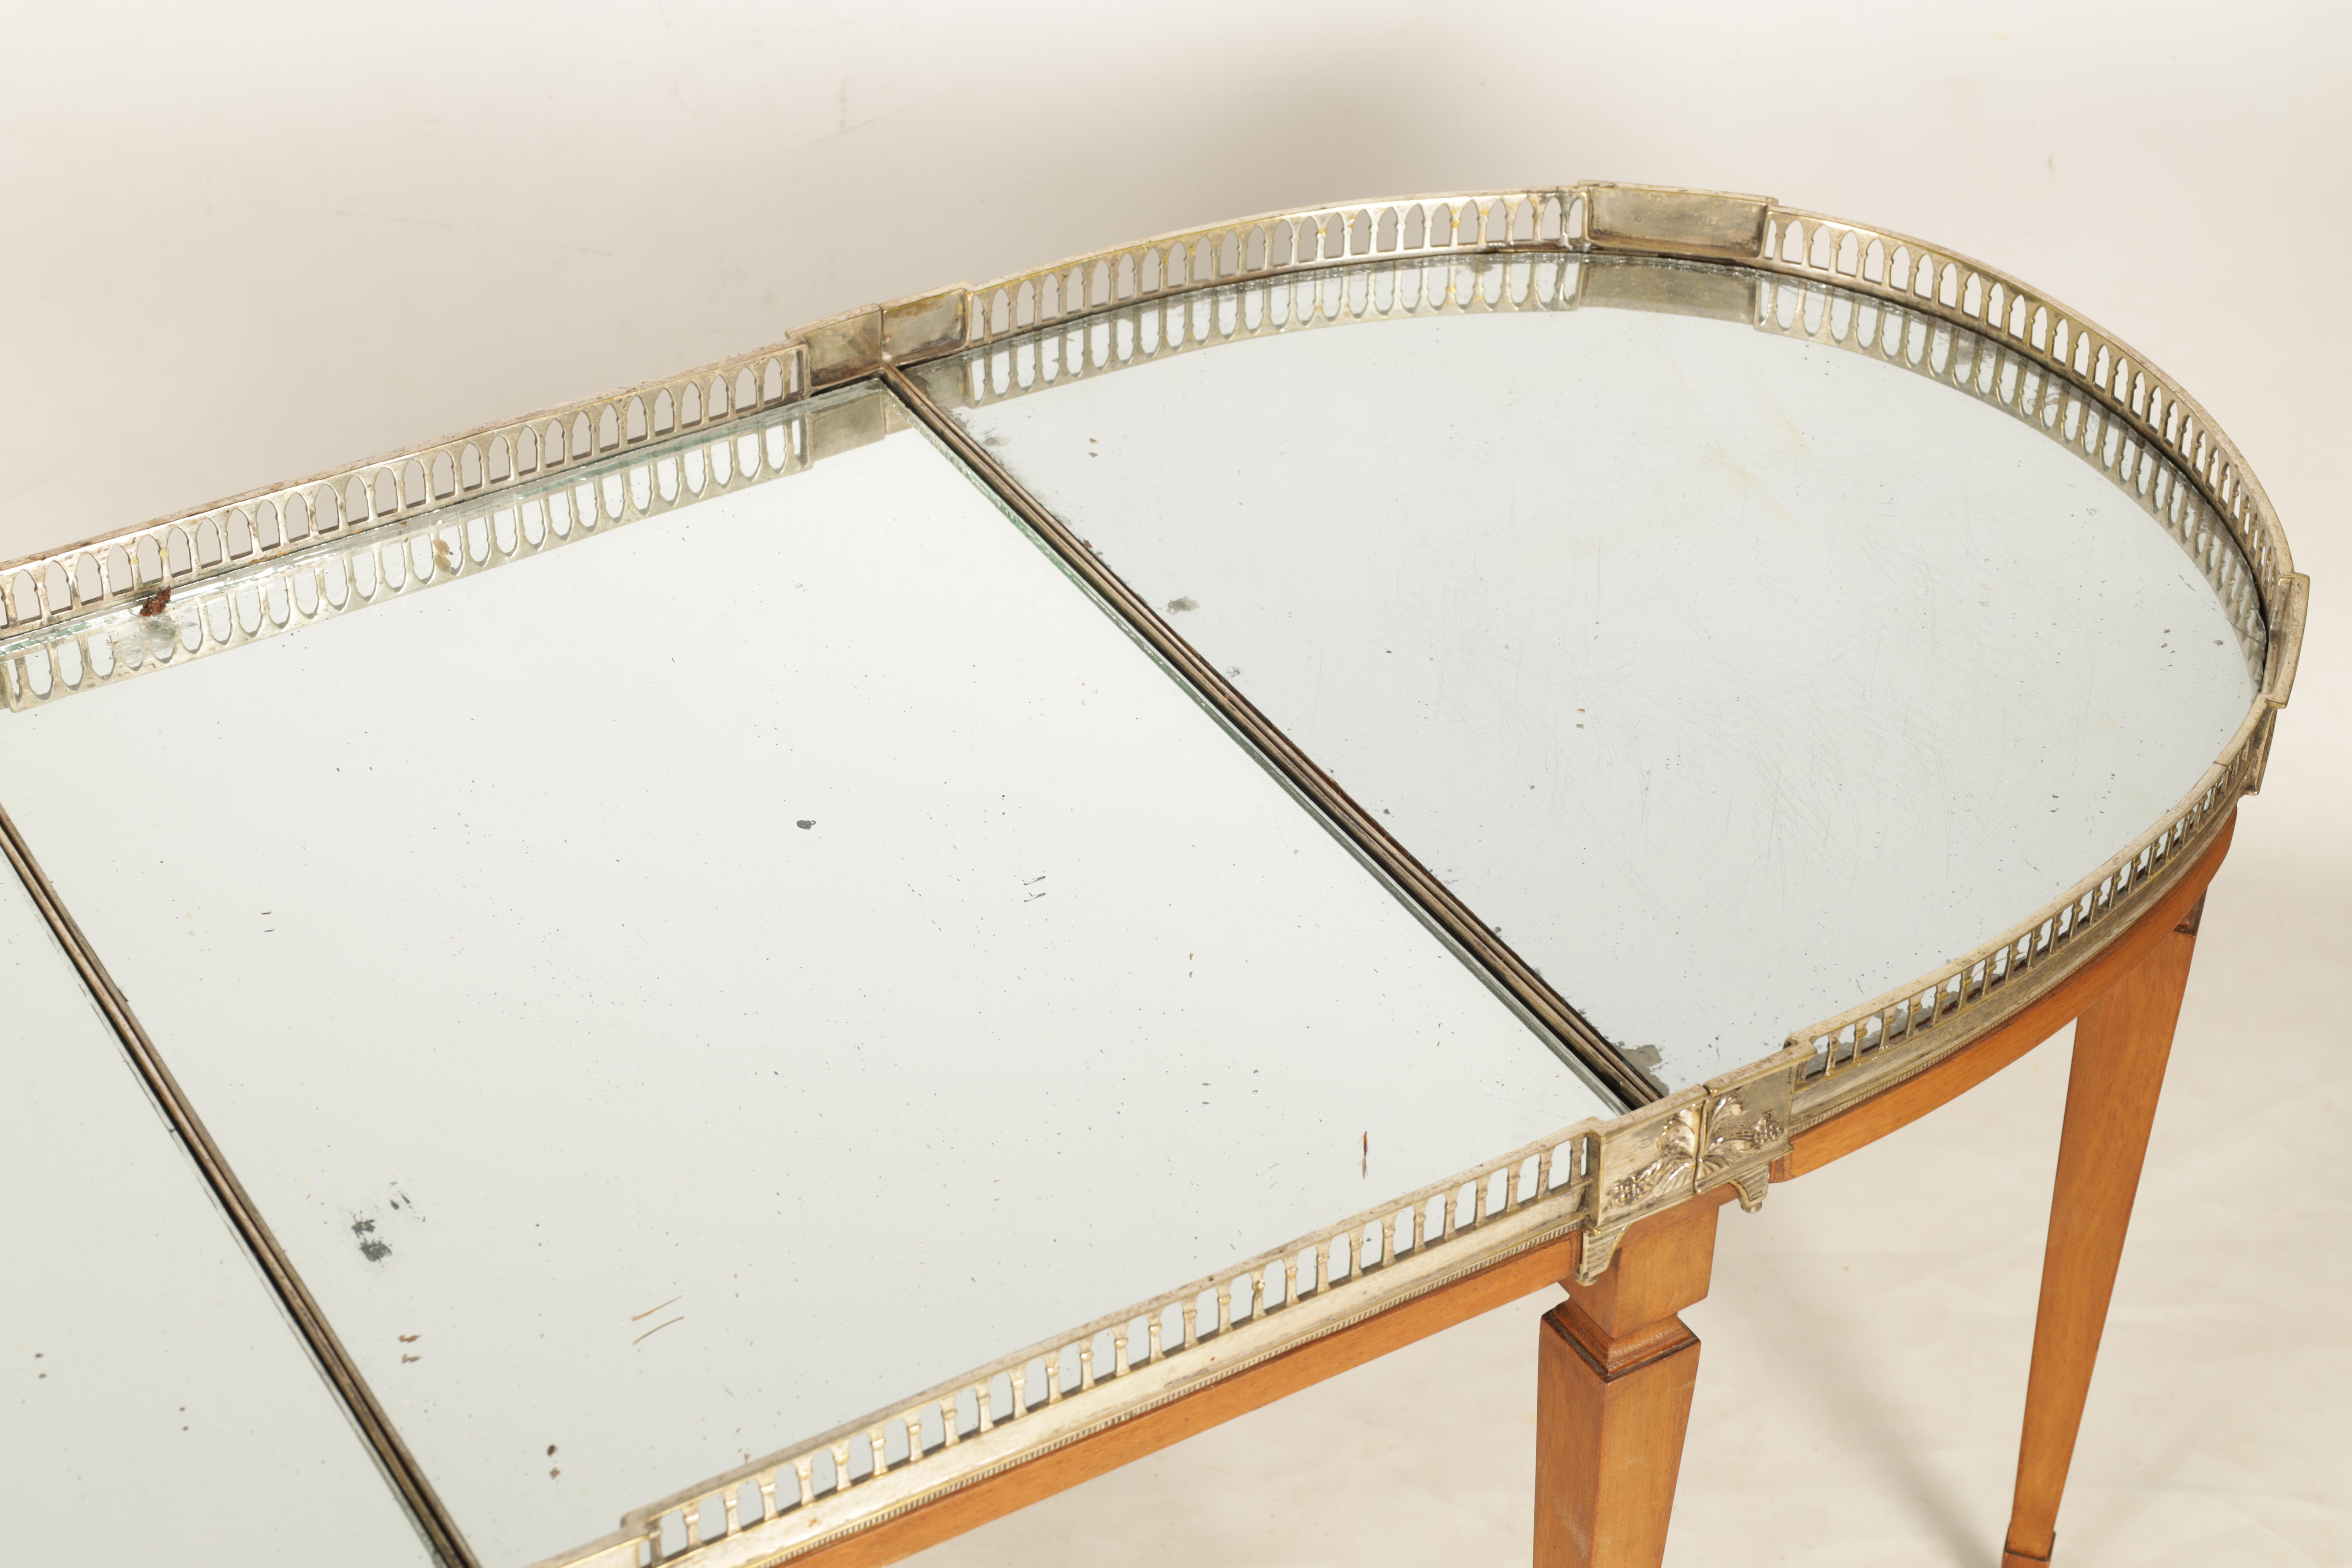 A 19TH CENTURY SILVERED BRONZE TABLE CENTREPIECE FOUR SECTIONAL TRAY with pierced gallery and - Image 4 of 5